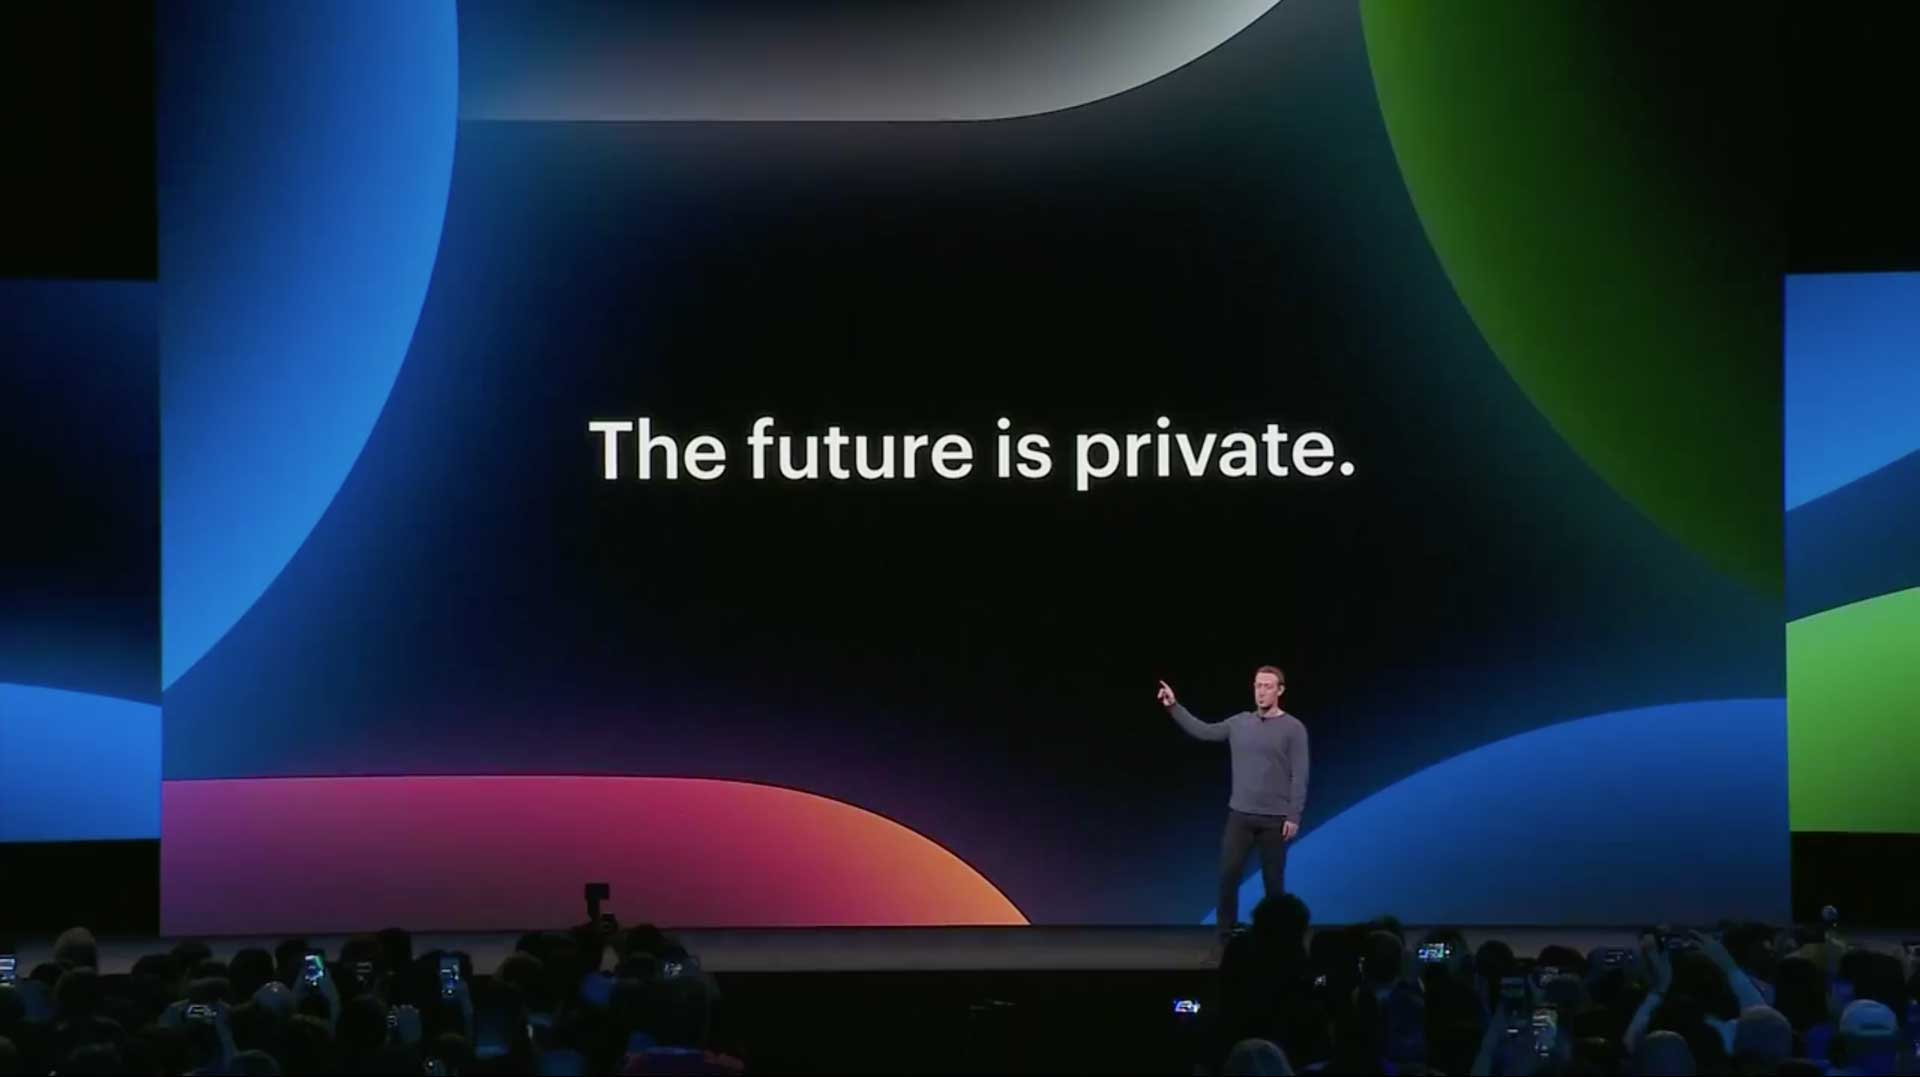 F82019 The future is private